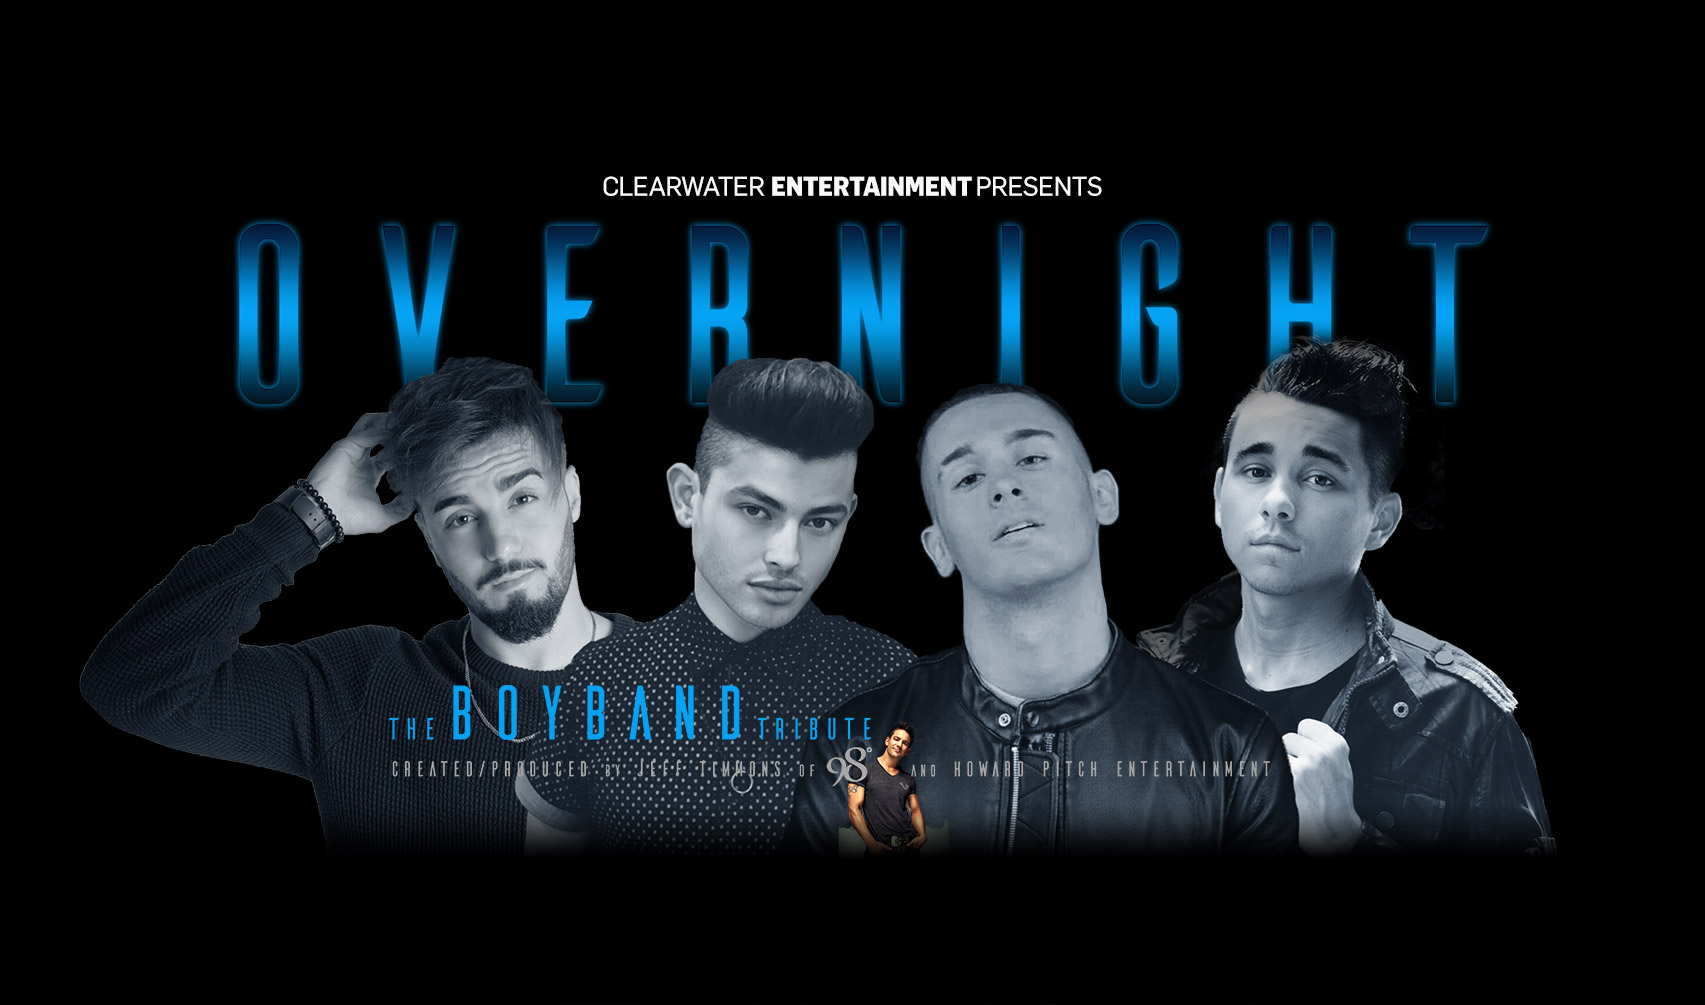 Overnight, The Boy Band Tribute